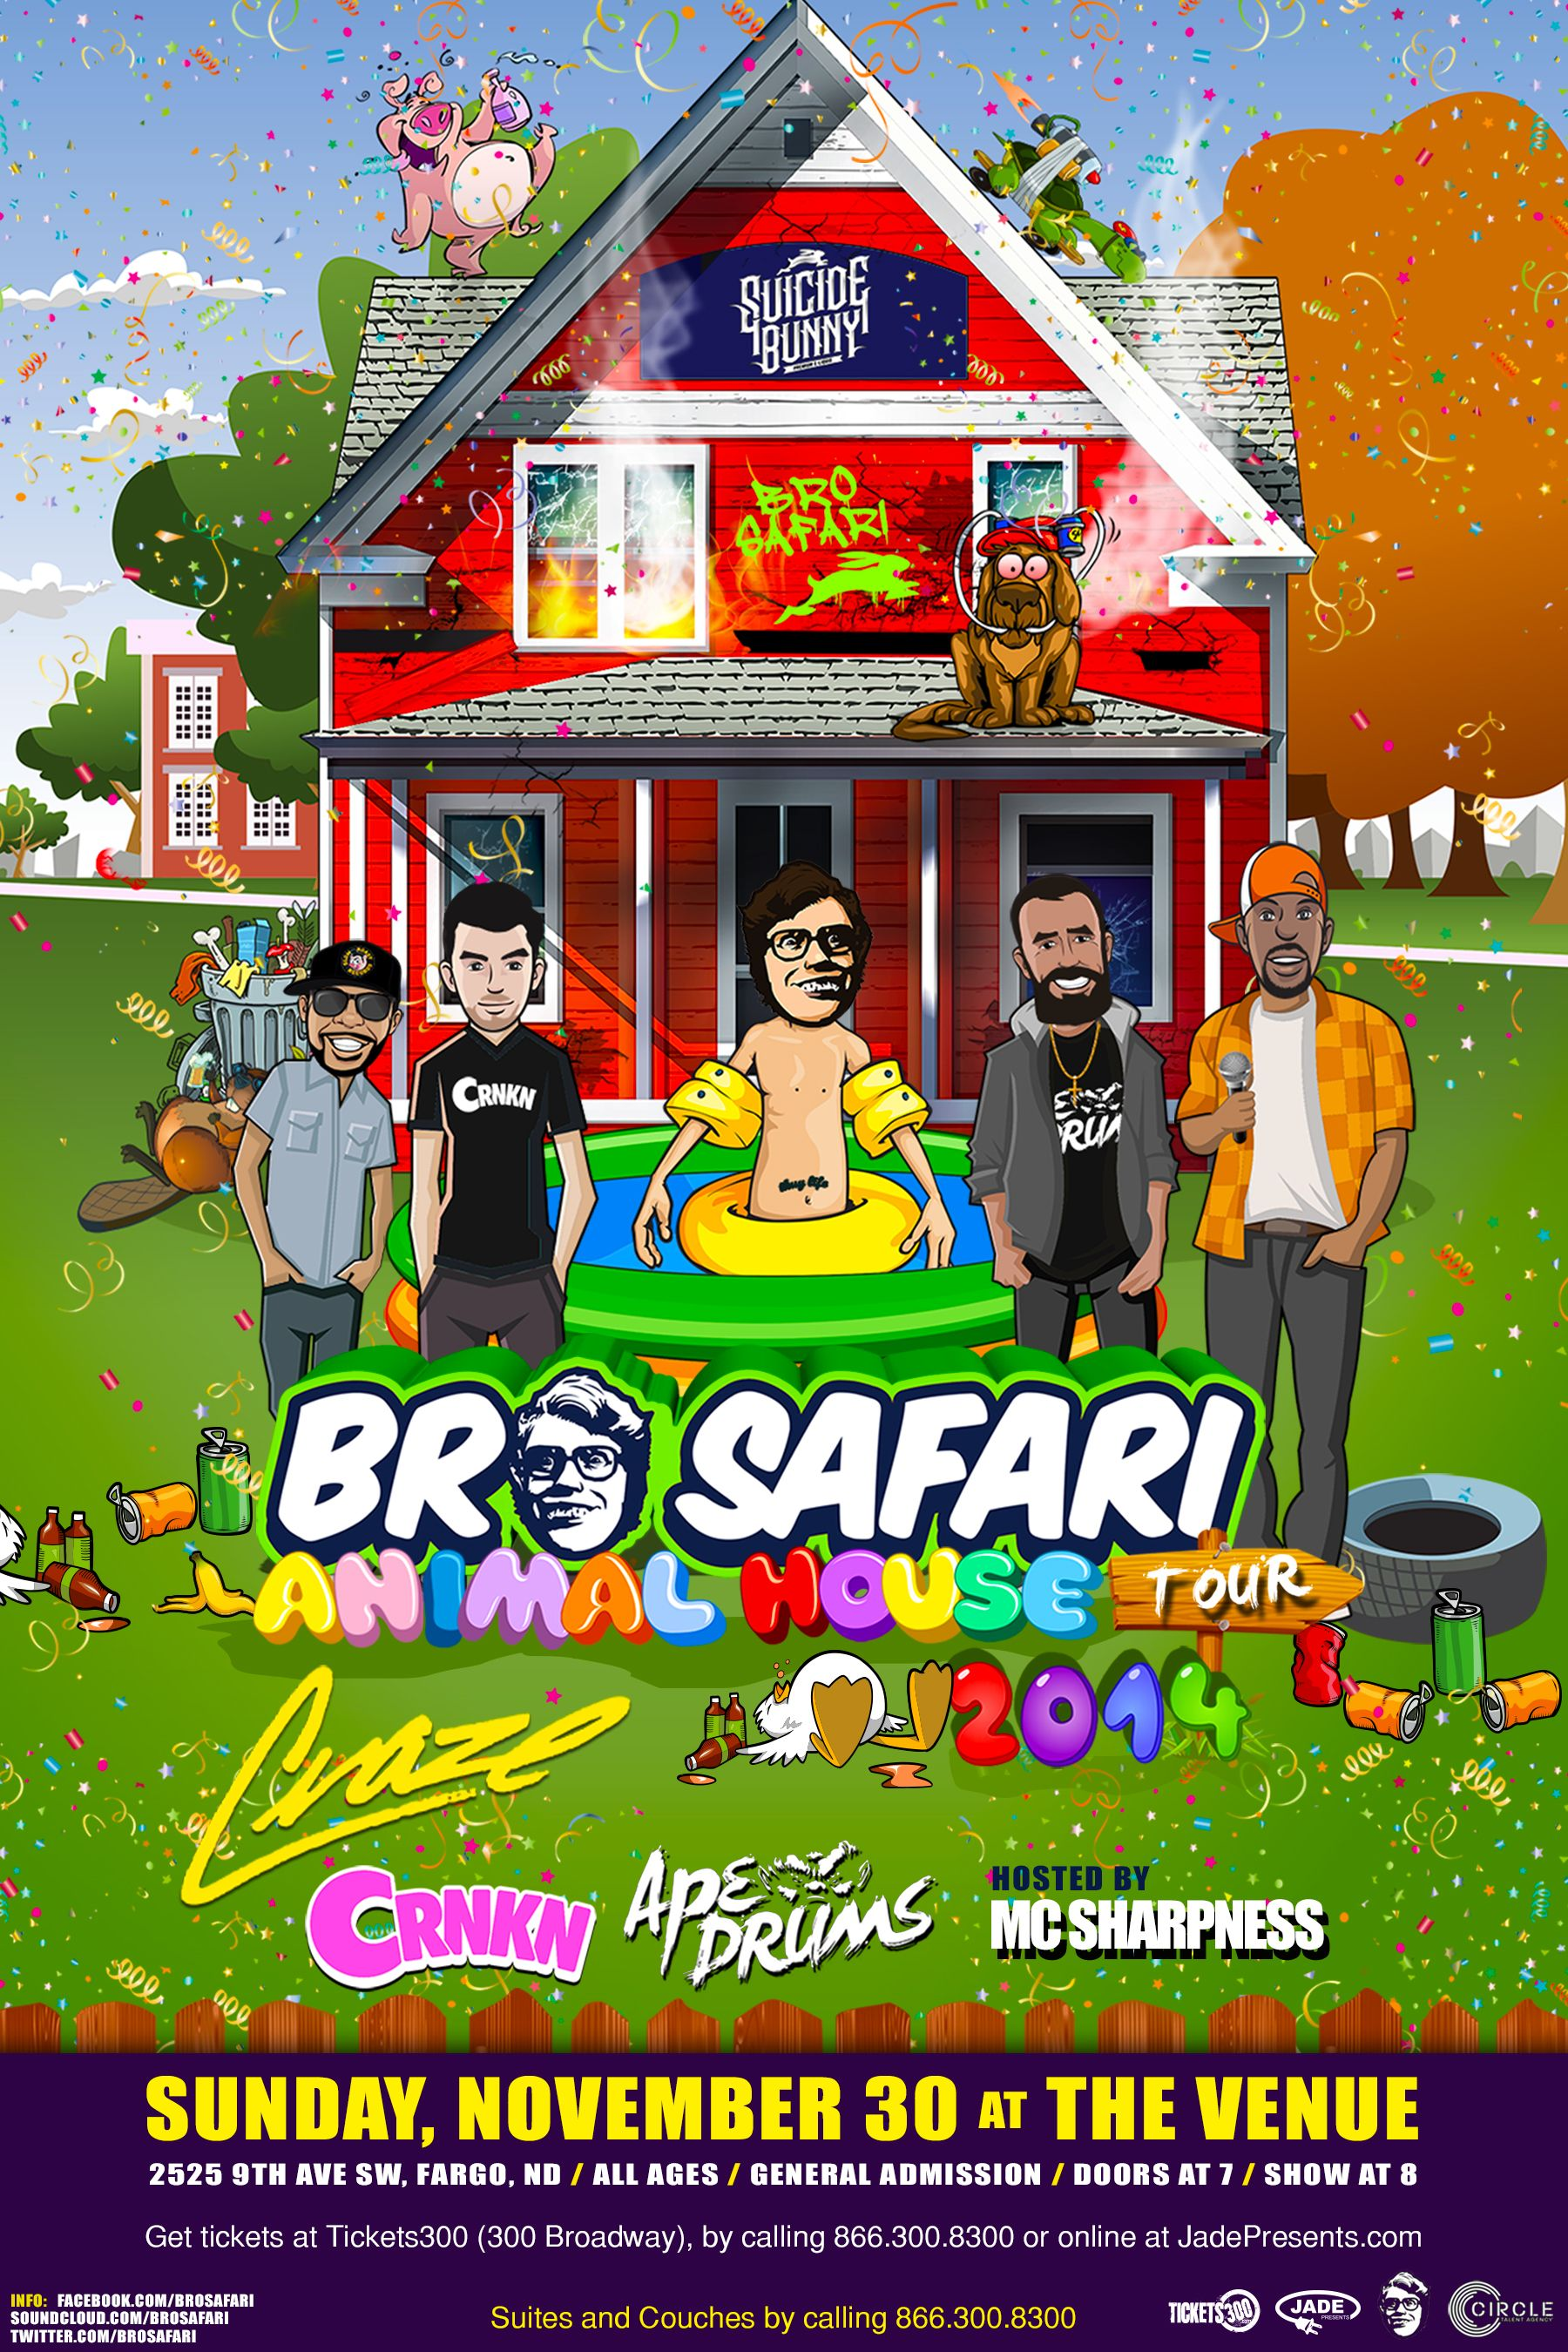 Bro Safari is bringing the Animal House Tour to The Venue on Sunday, November 30th! Purchase your tickets today at Tickets300, by calling 866-300-8300, or online at jadepresents.com.